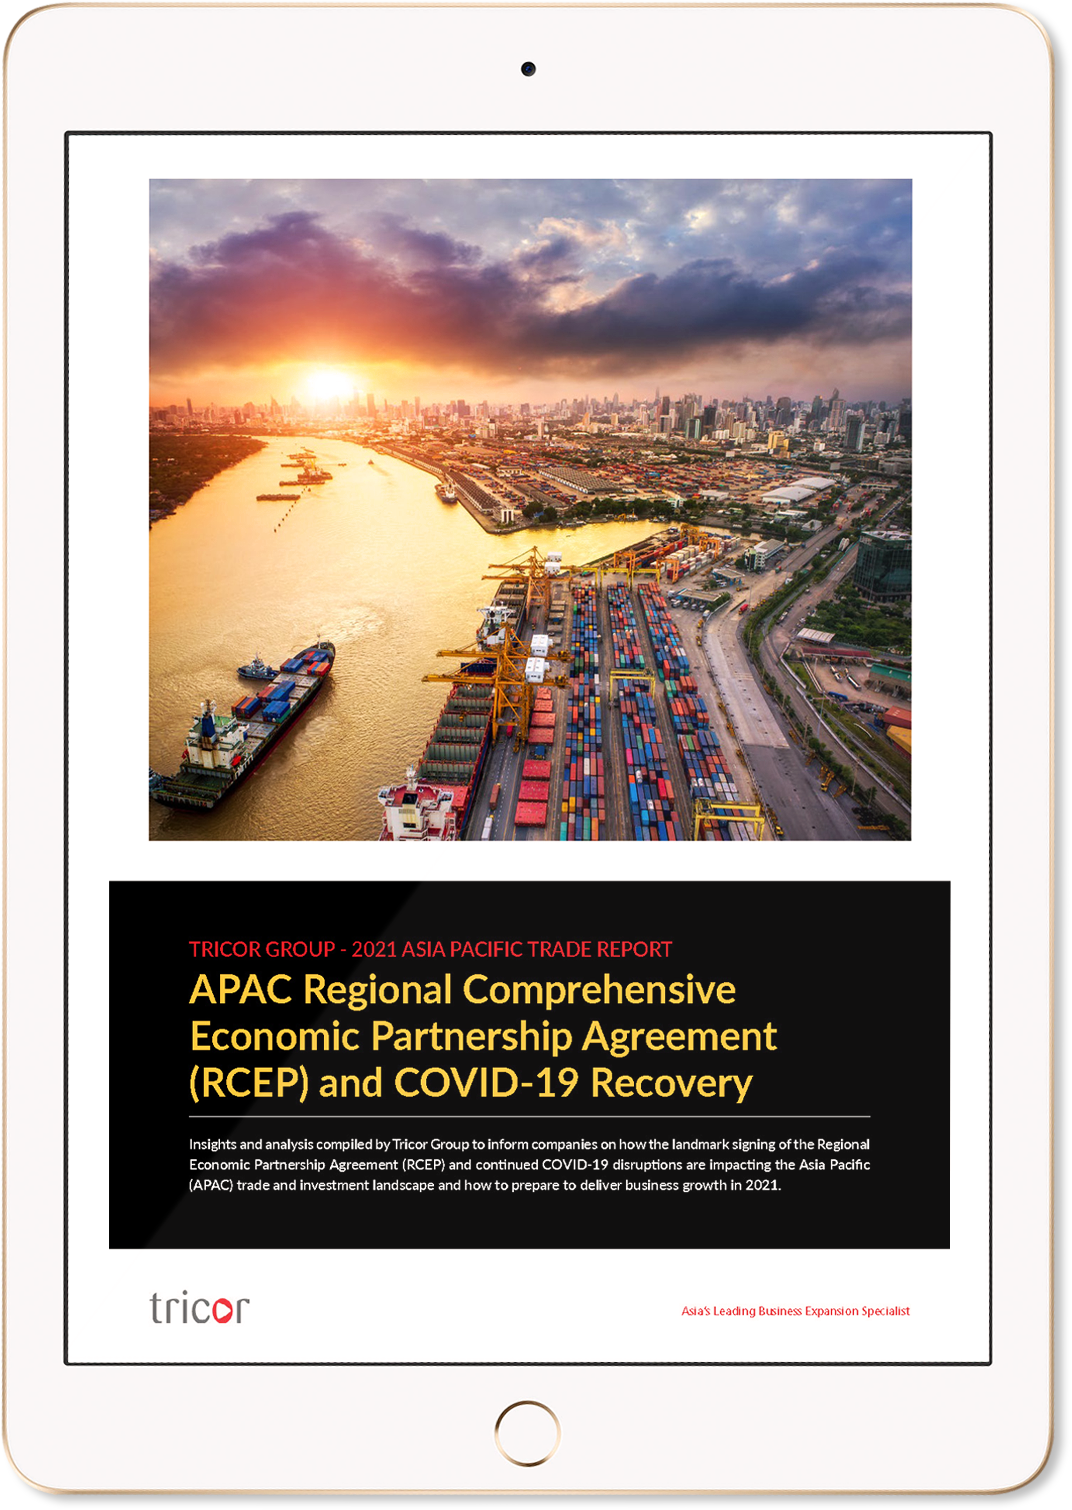 APAC Regional Comprehensive Economic Partnership Agreement (RCEP) and COVID-19 Recovery